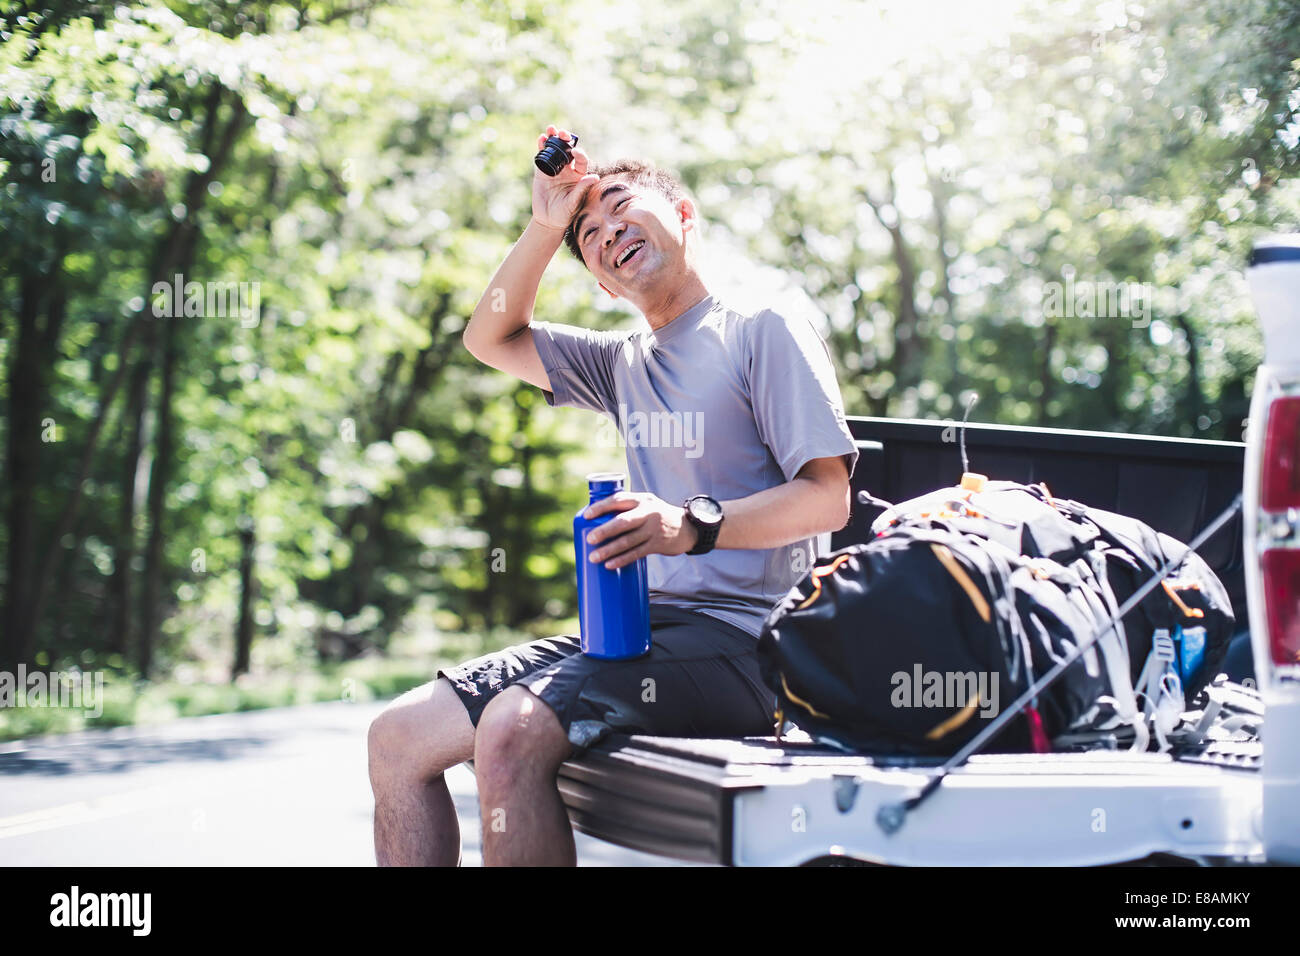 Mature man sitting on pick up truck, wiping brow - Stock Image